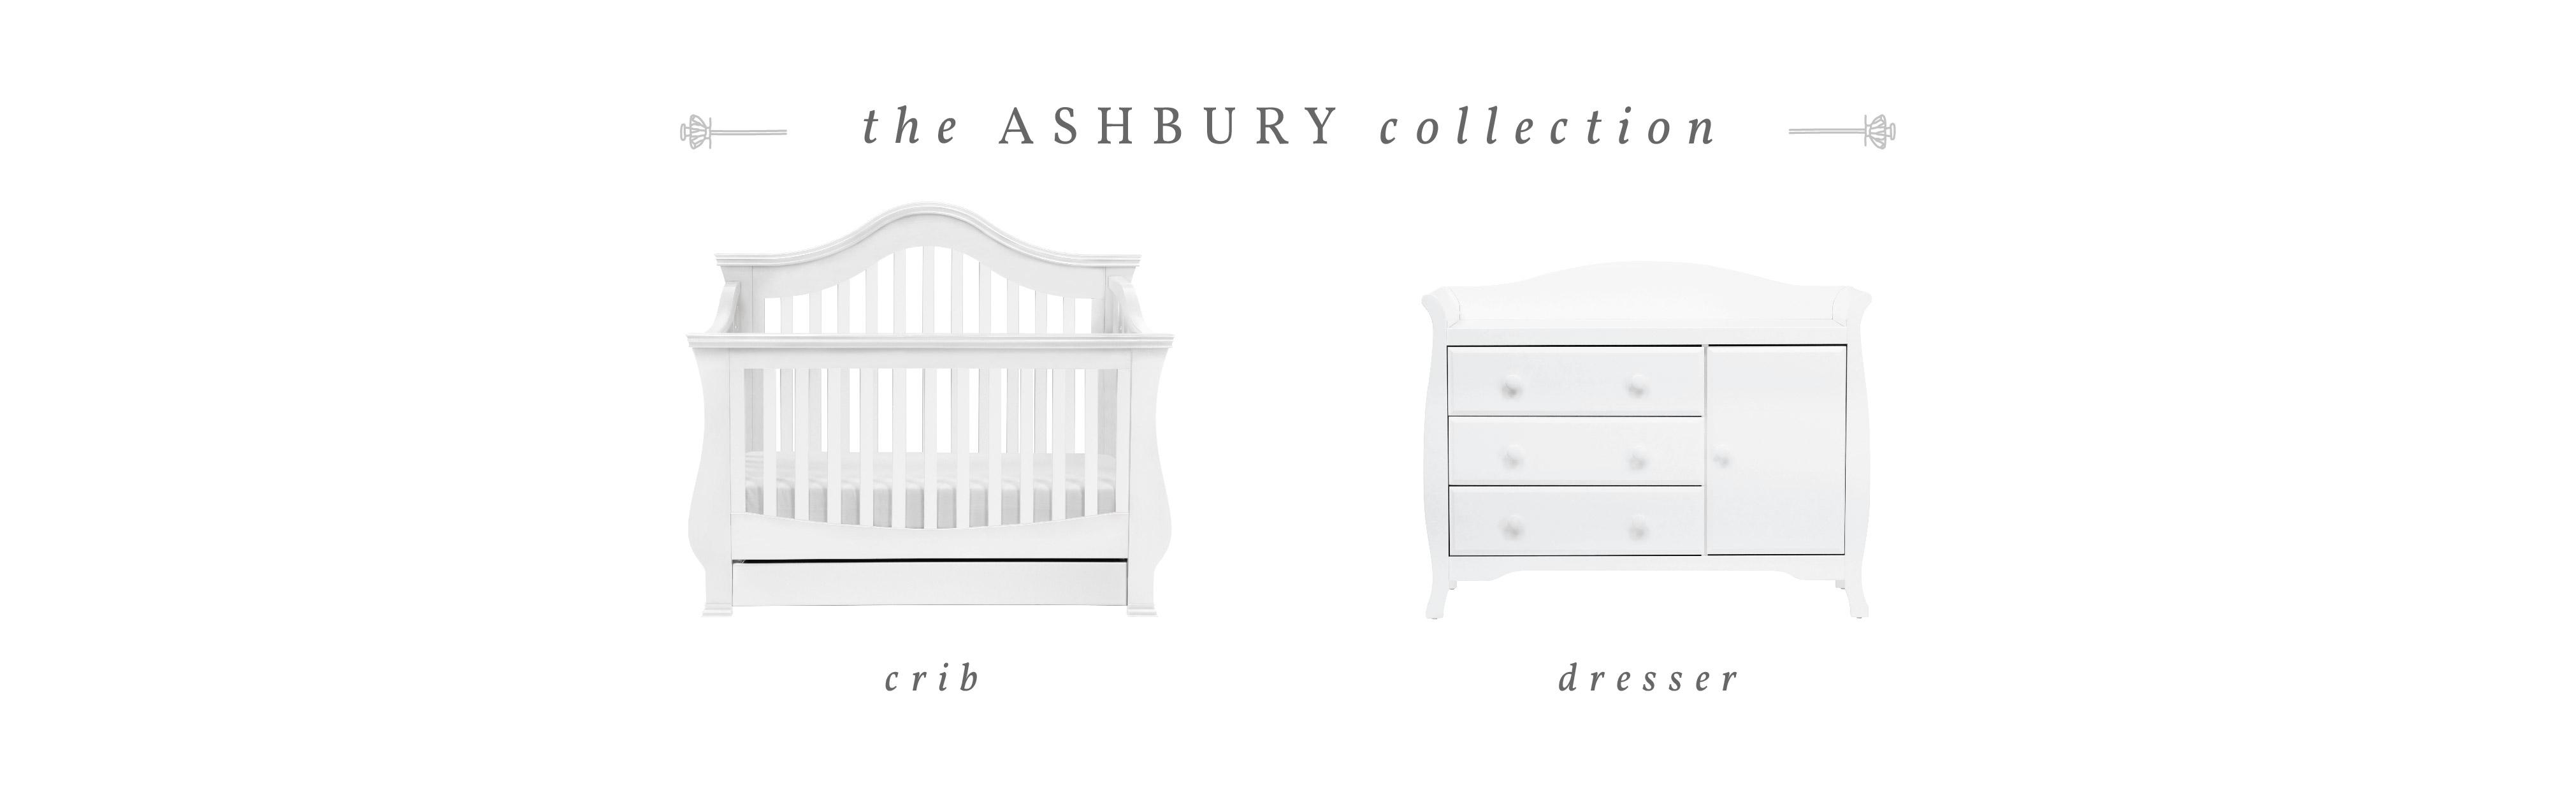 two a and for practical crib stained drawer underneath drawers interior bedding the bedroom square yet wooden decor baby wonderful home storage fabulous your simple clothes get white ideas with